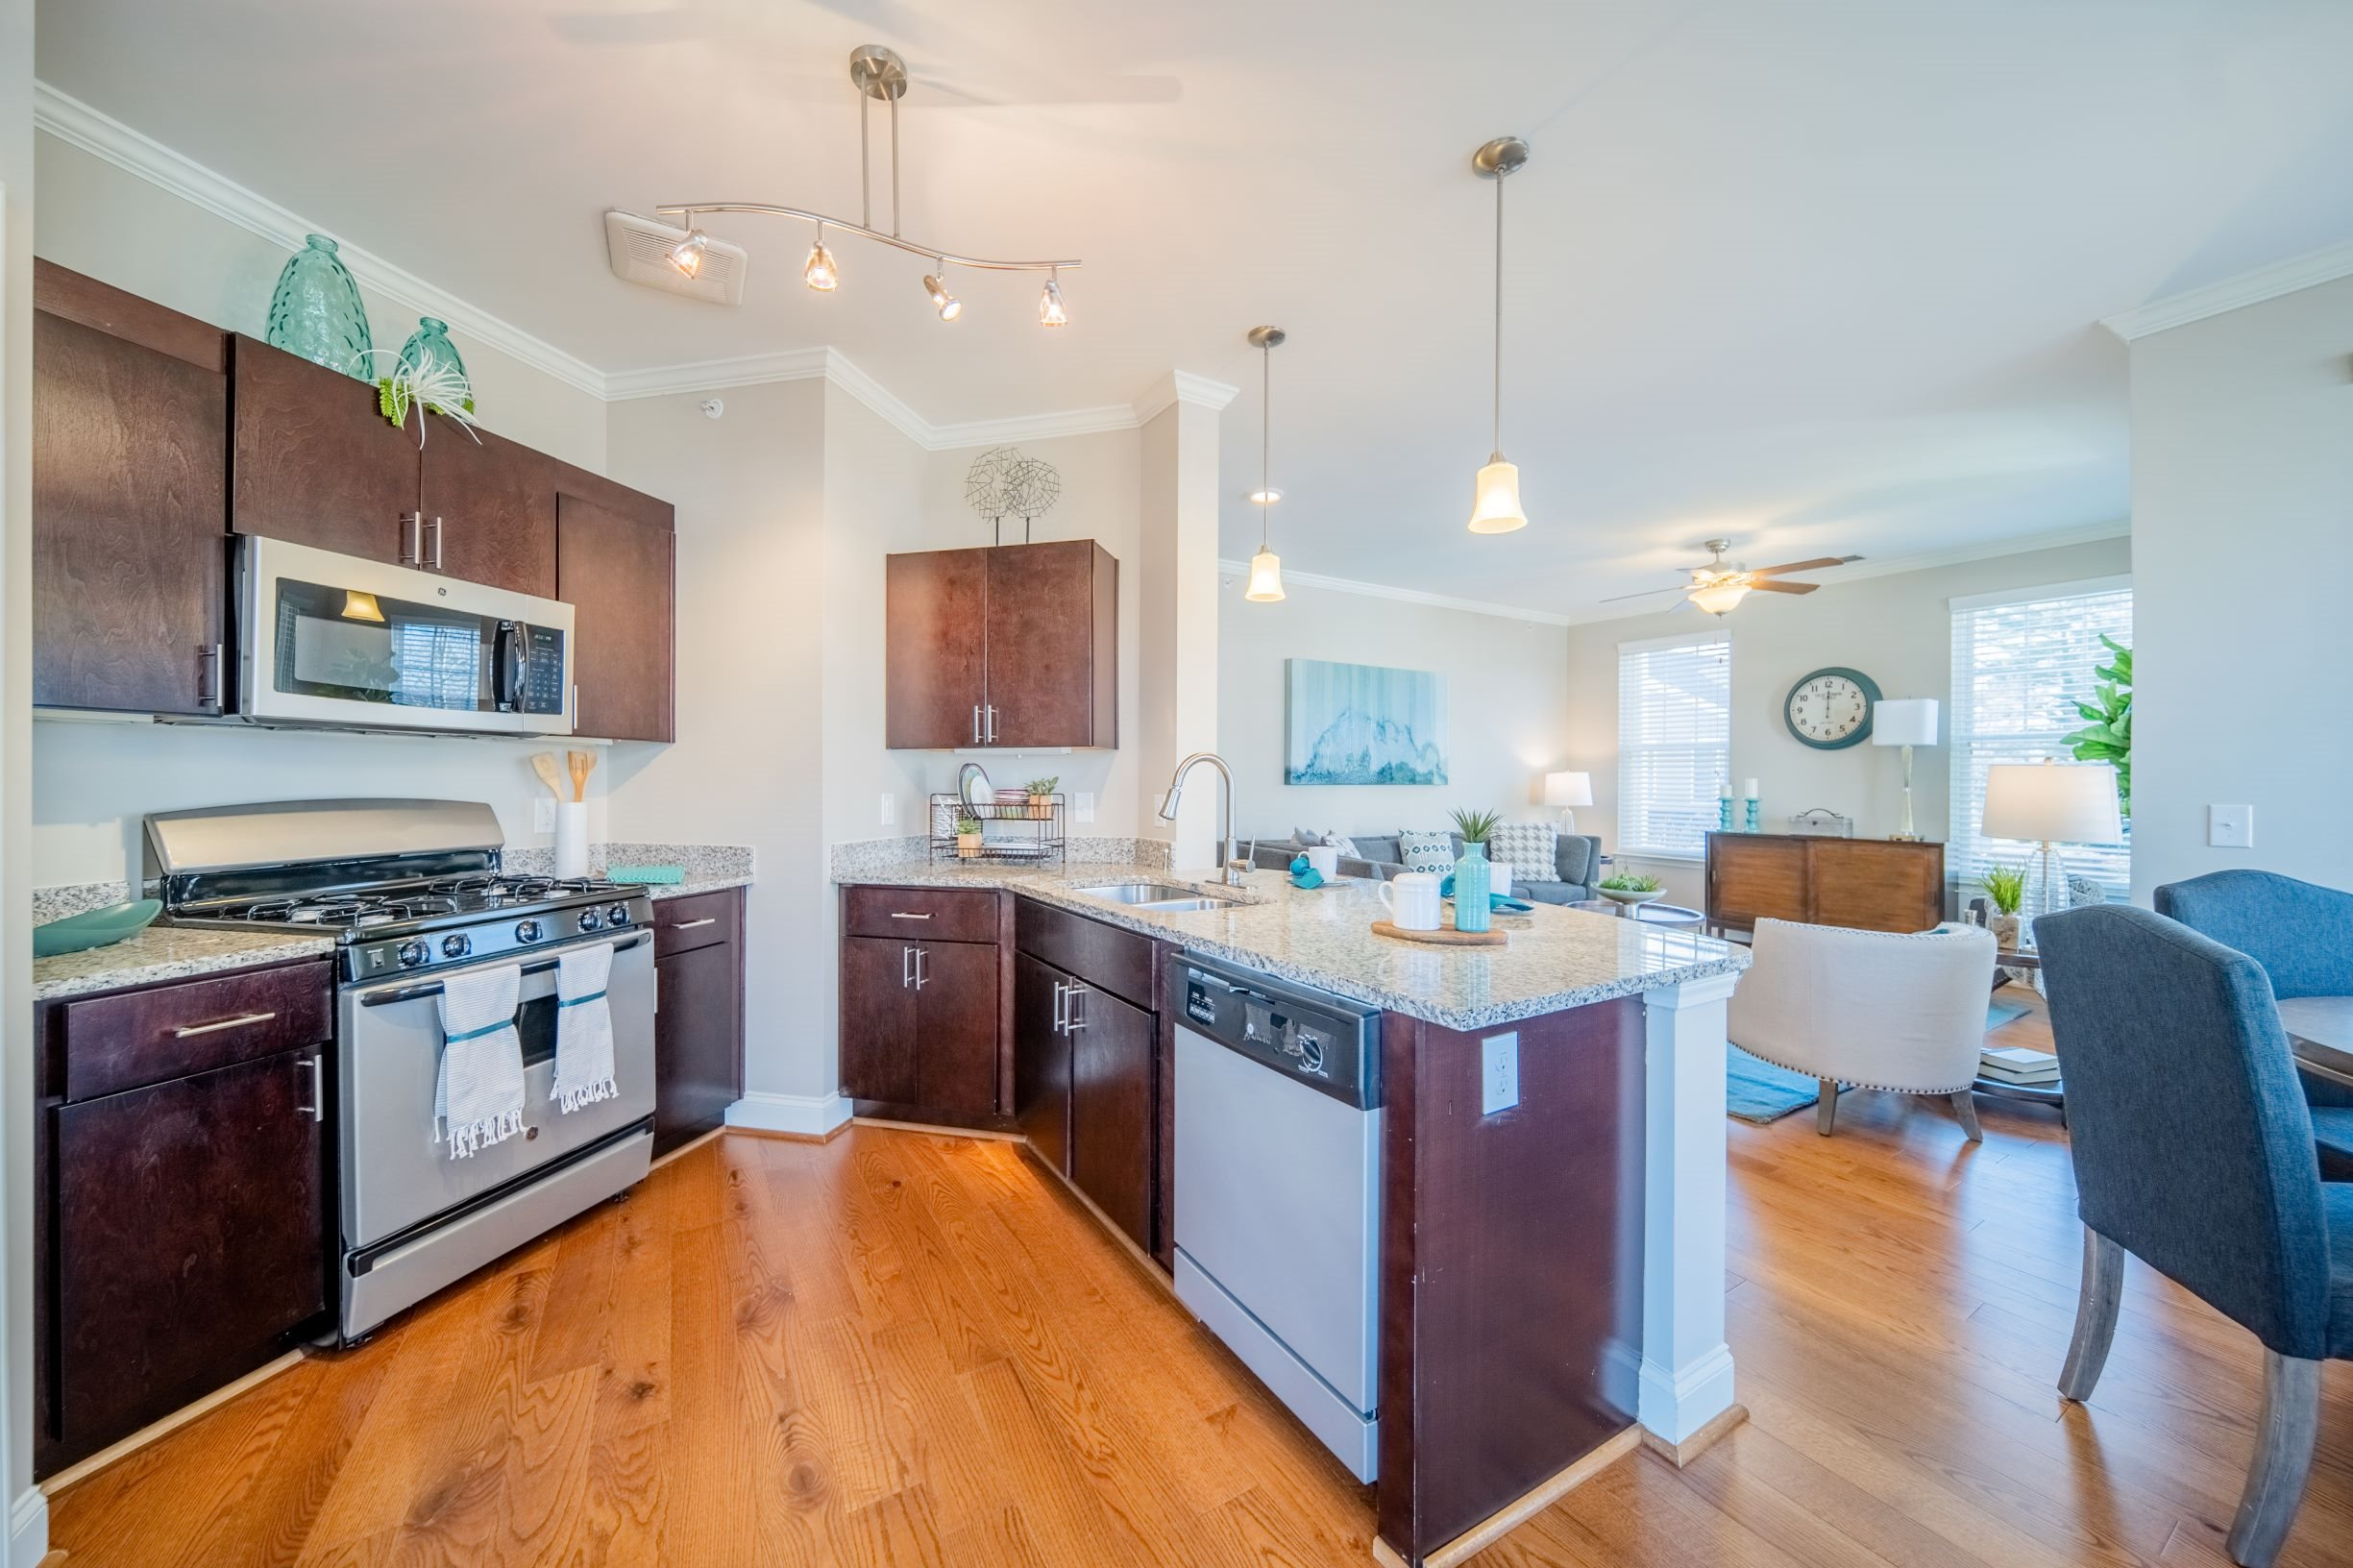 Fully-equipped kitchen with granite countertops and stainless steel appliances at Piedmont Place in Greensboro, NC